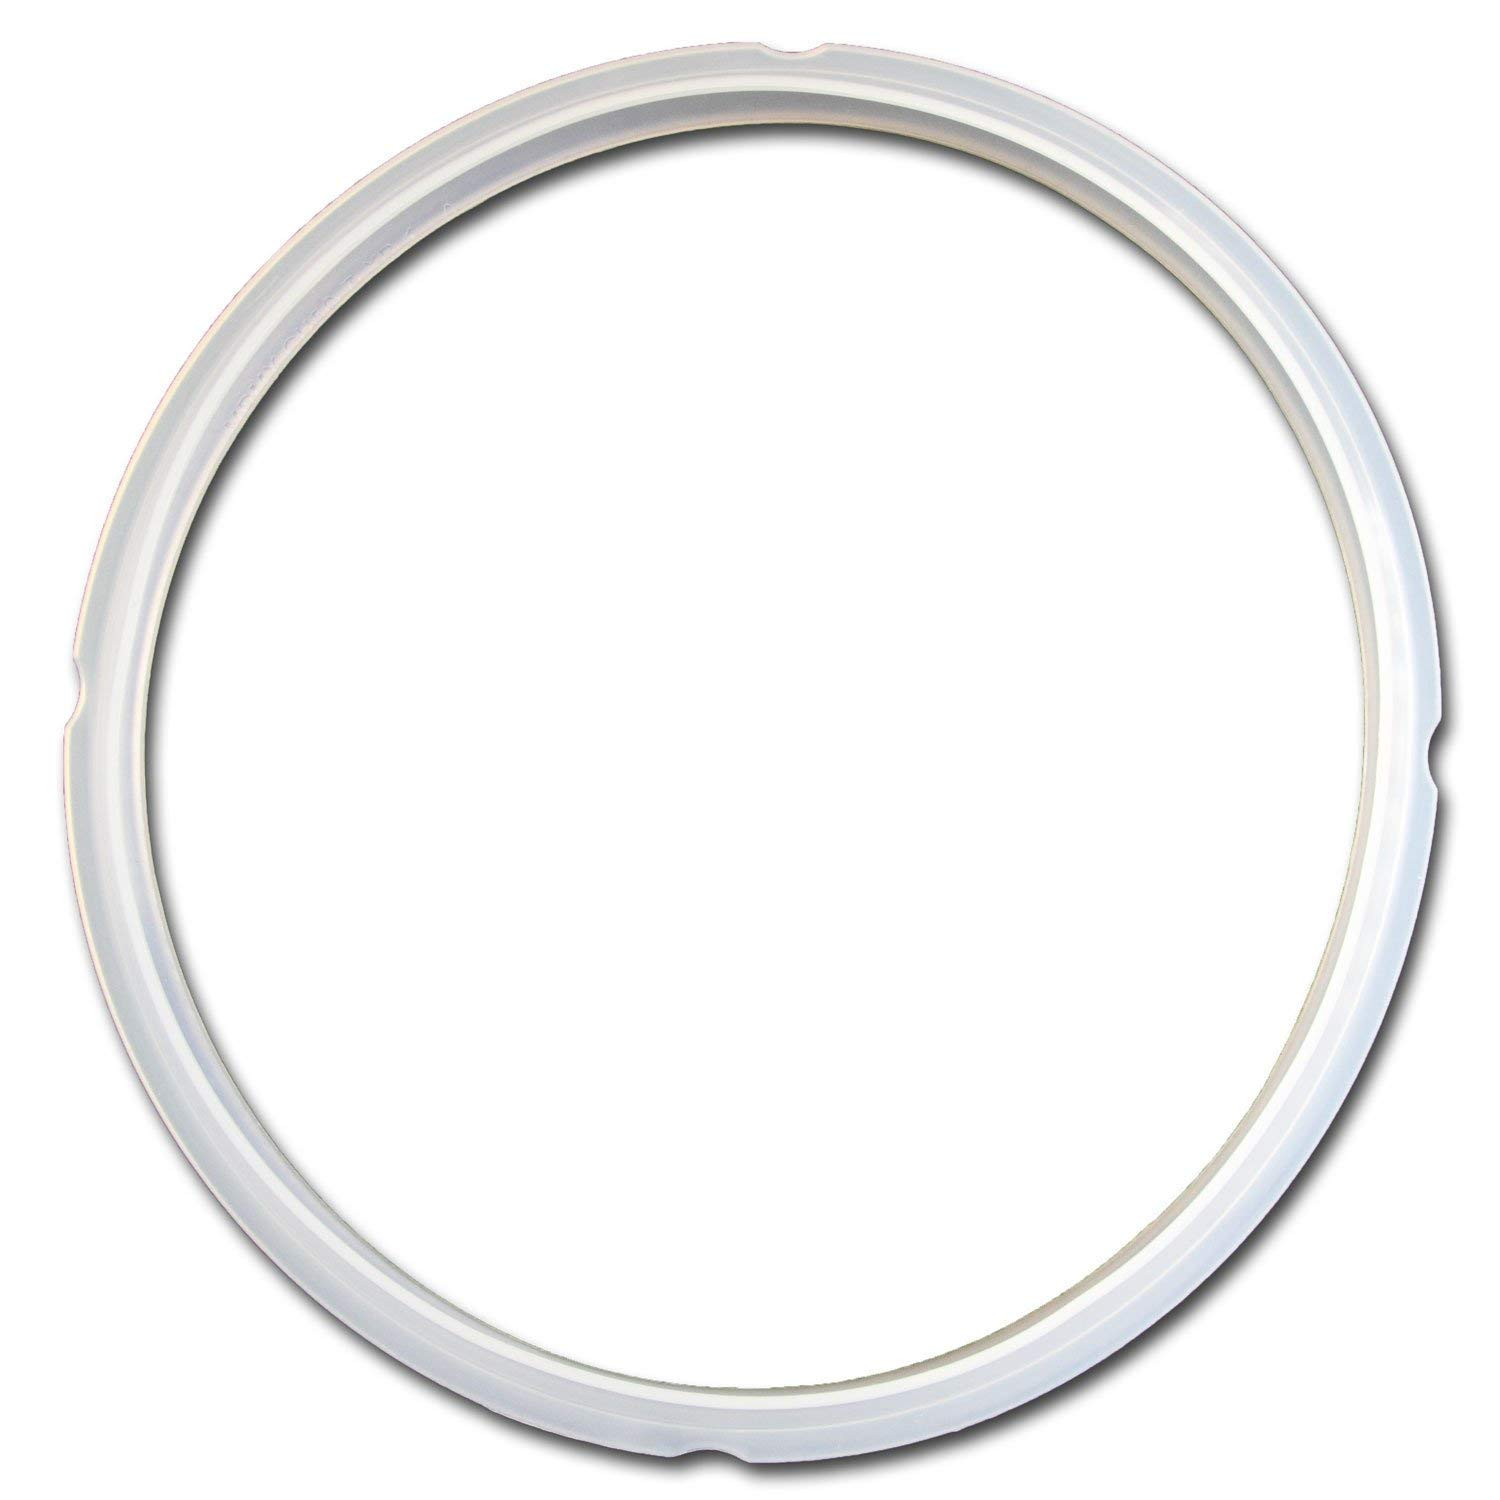 Electric Pressure Cooker Sealing Ring or Seal Ring or Rubber Gasket or Sealing Gasket- For Many 5 Liter, 6 Liter, 5 Quart, and 6 Quart Models